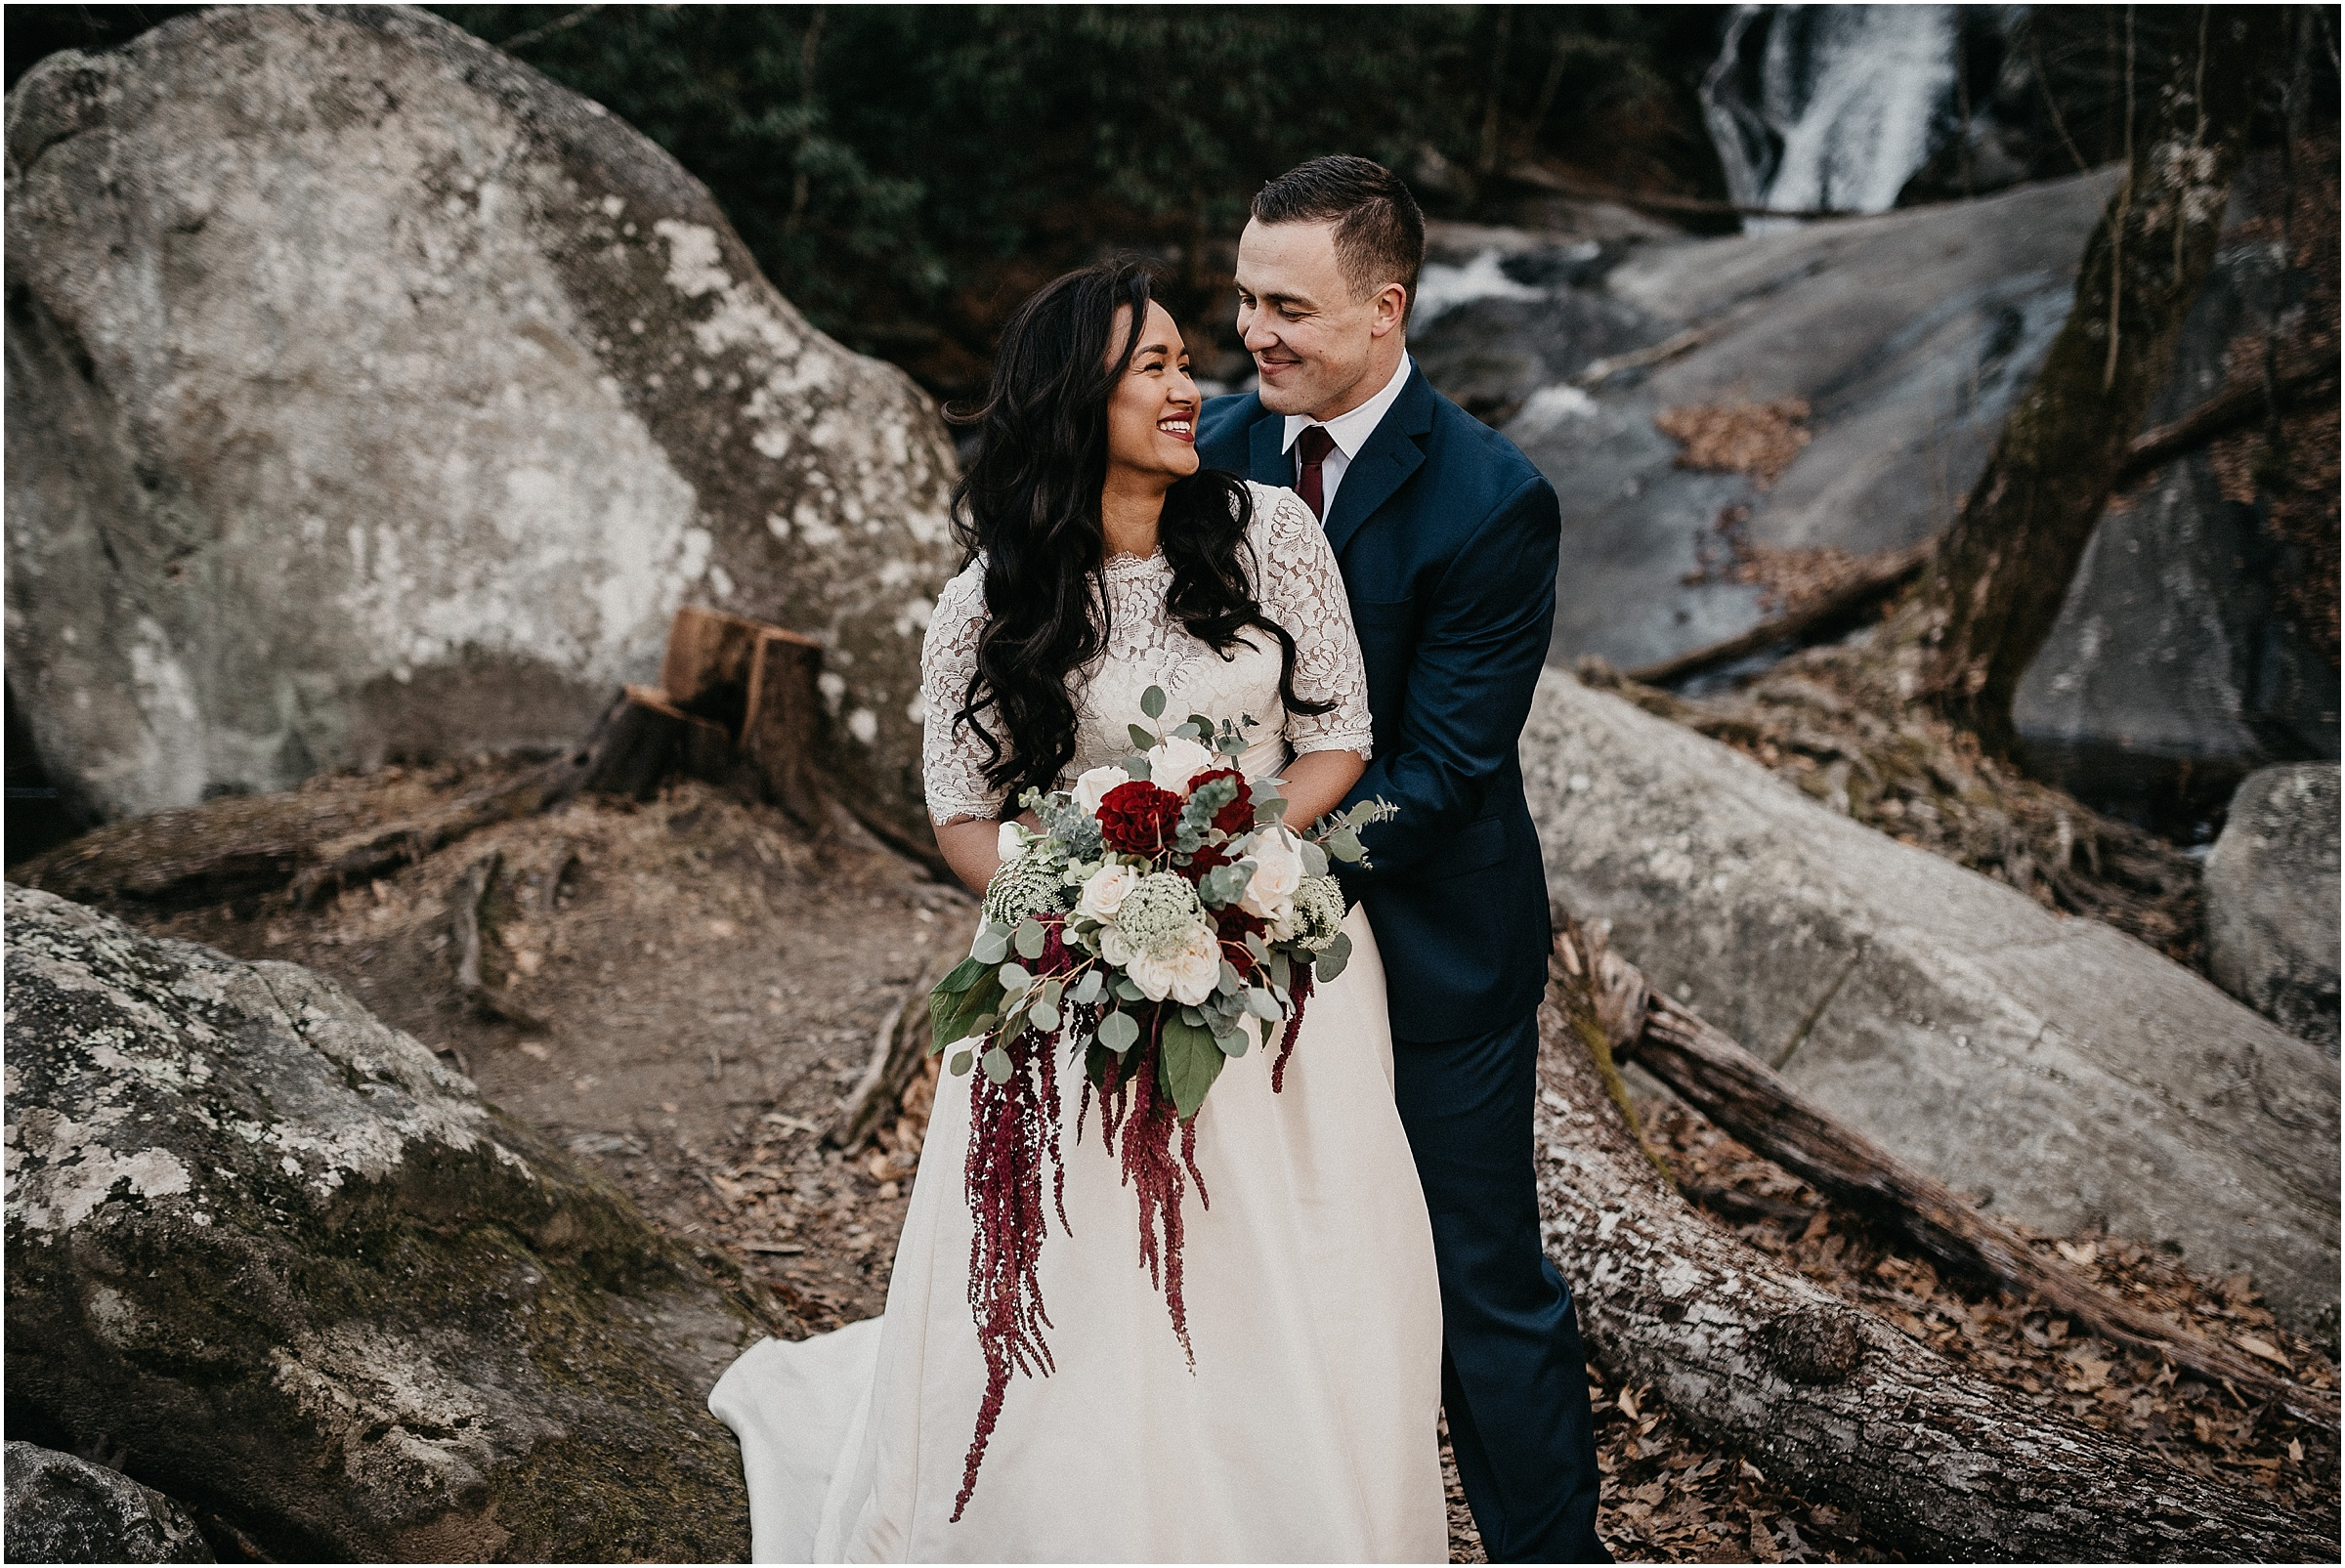 Stone_Mountain_NC_Elopement_11.JPG